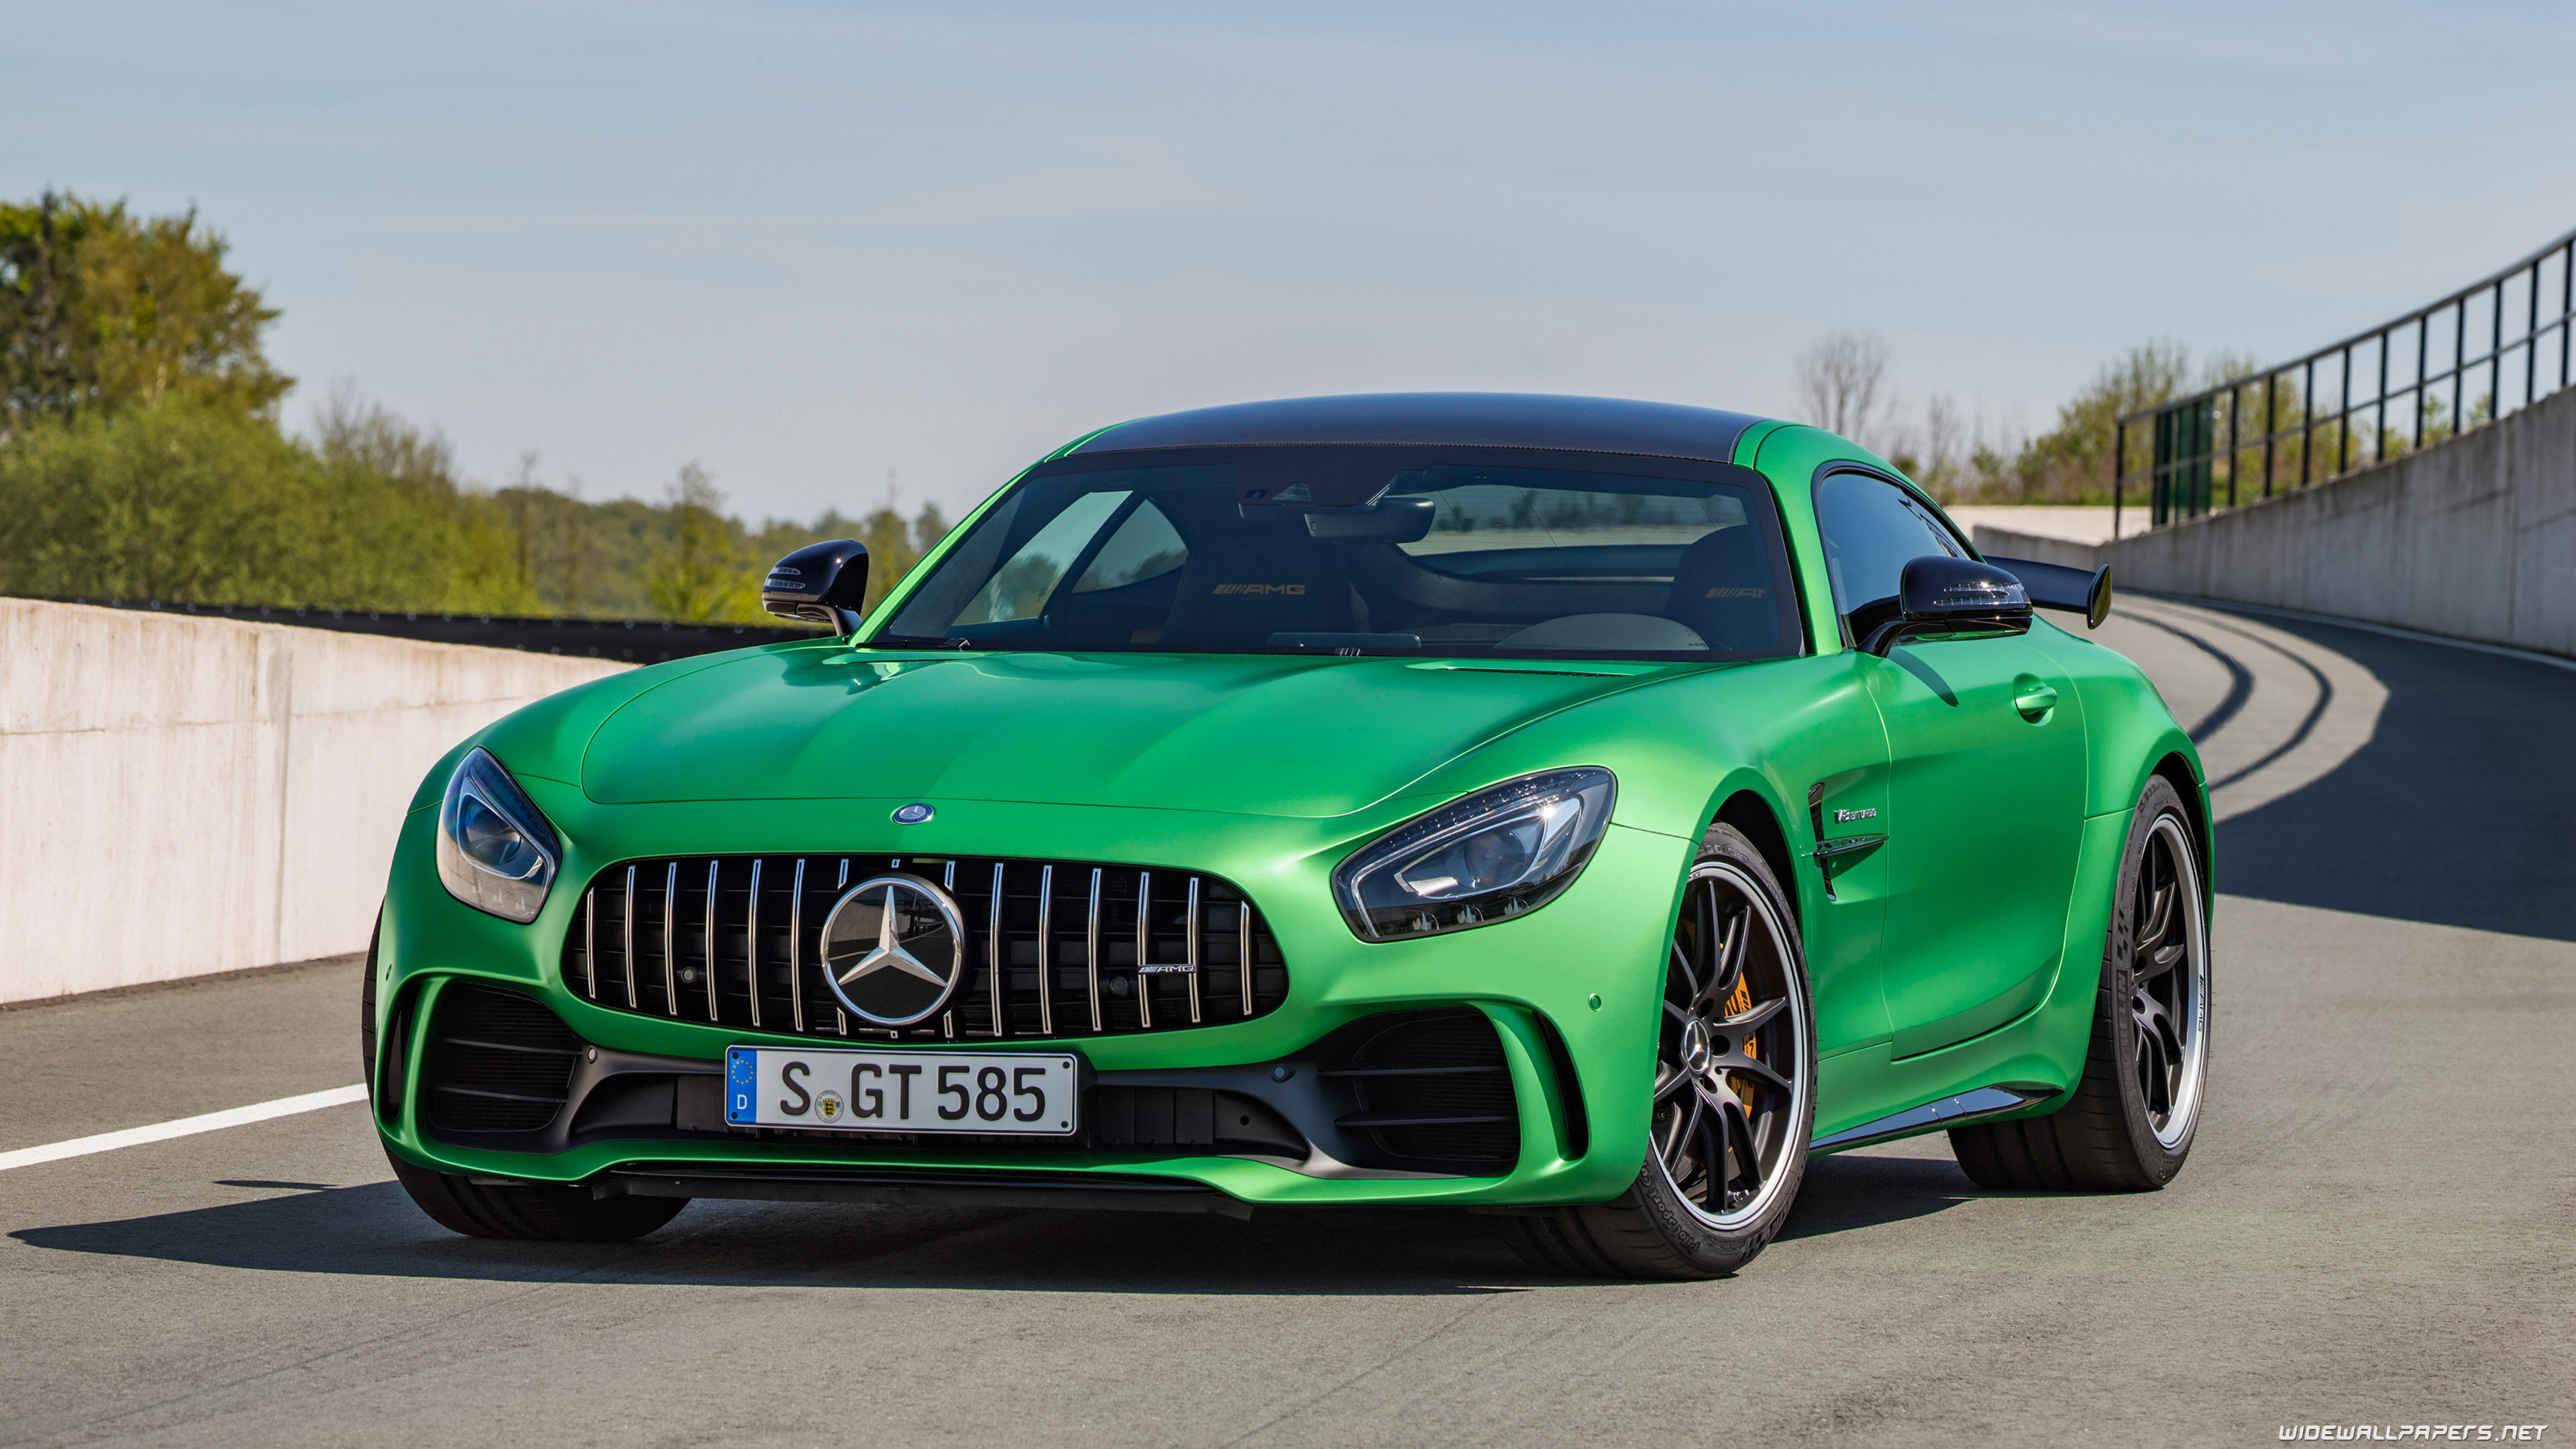 mercedes amg gt cars desktop wallpapers 4k ultra hd. Black Bedroom Furniture Sets. Home Design Ideas